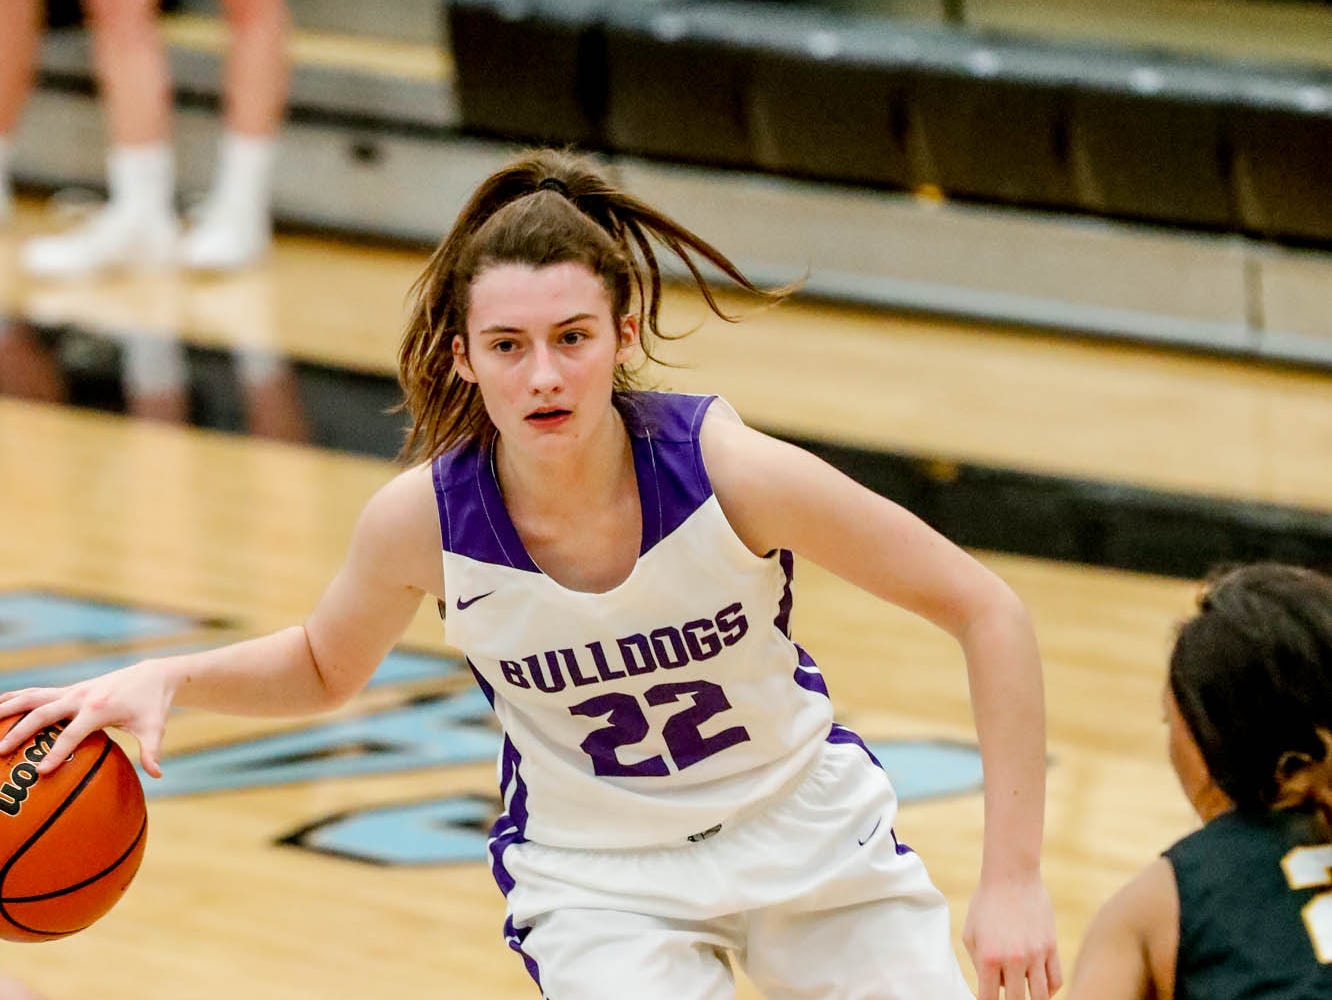 Brownsburg High School's guard Ally Becki (22), looks for a hole in Avons defense during a 2019 Hendricks County Basketball Tournament game between the Avon High School girls varsity basketball team and Brownsburg High School, held at Cascade High School on Saturday, Jan. 5, 2019.